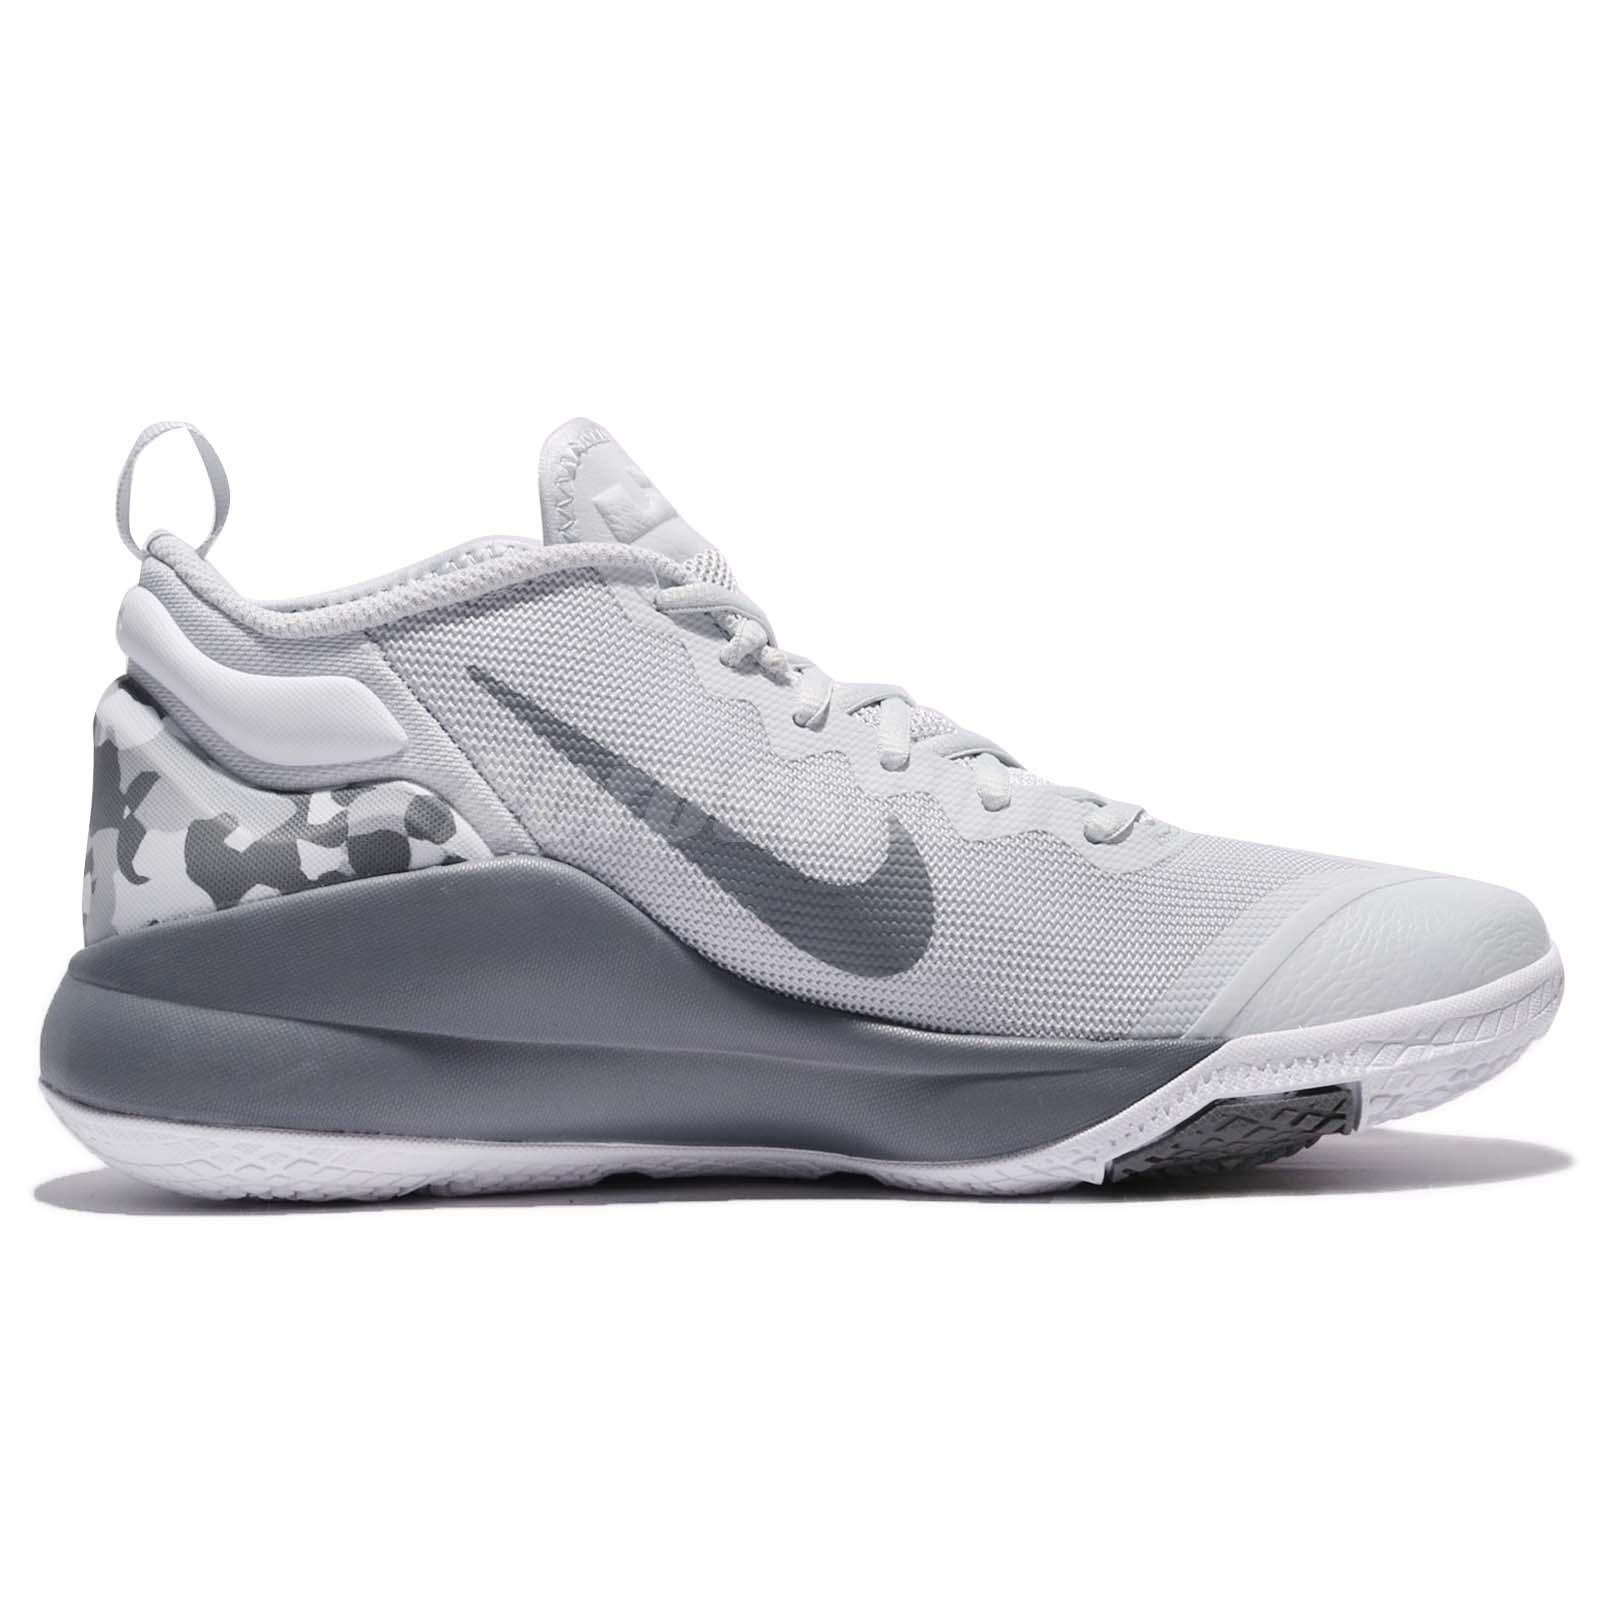 Nike Lebron James Wintness 2 Colorful Grey Shoes